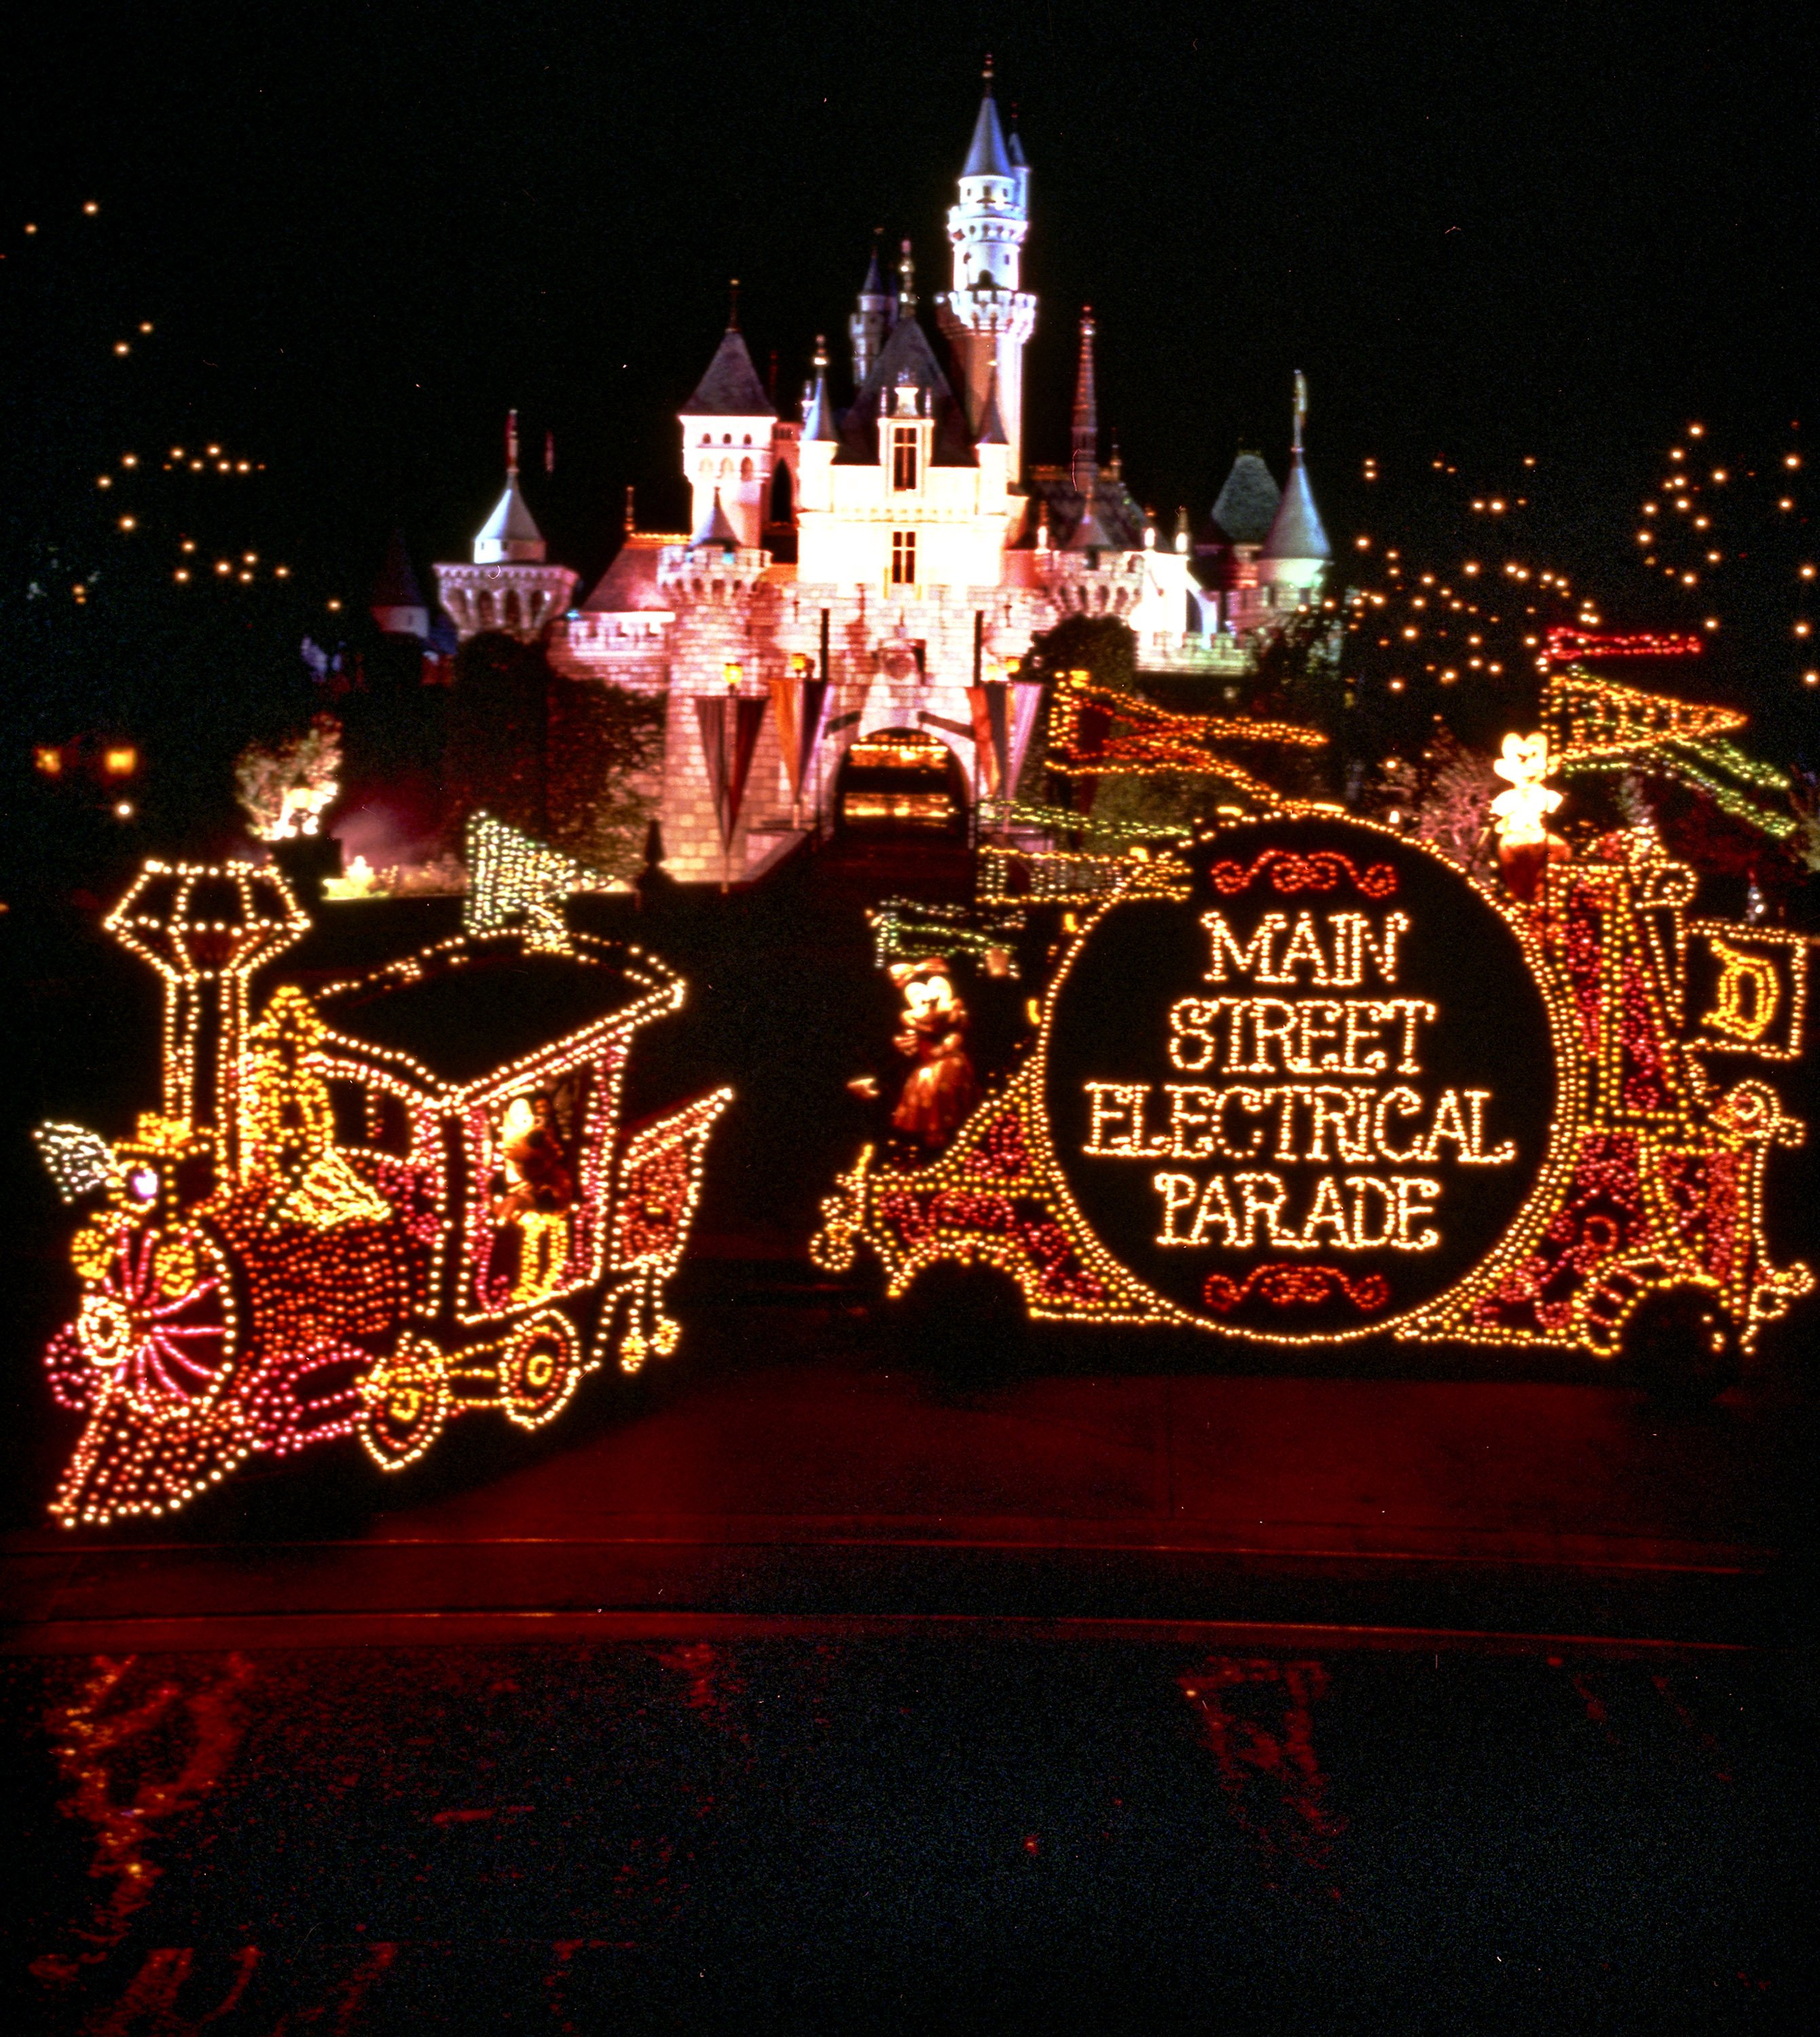 A look back at the Main Street Electrical Parade